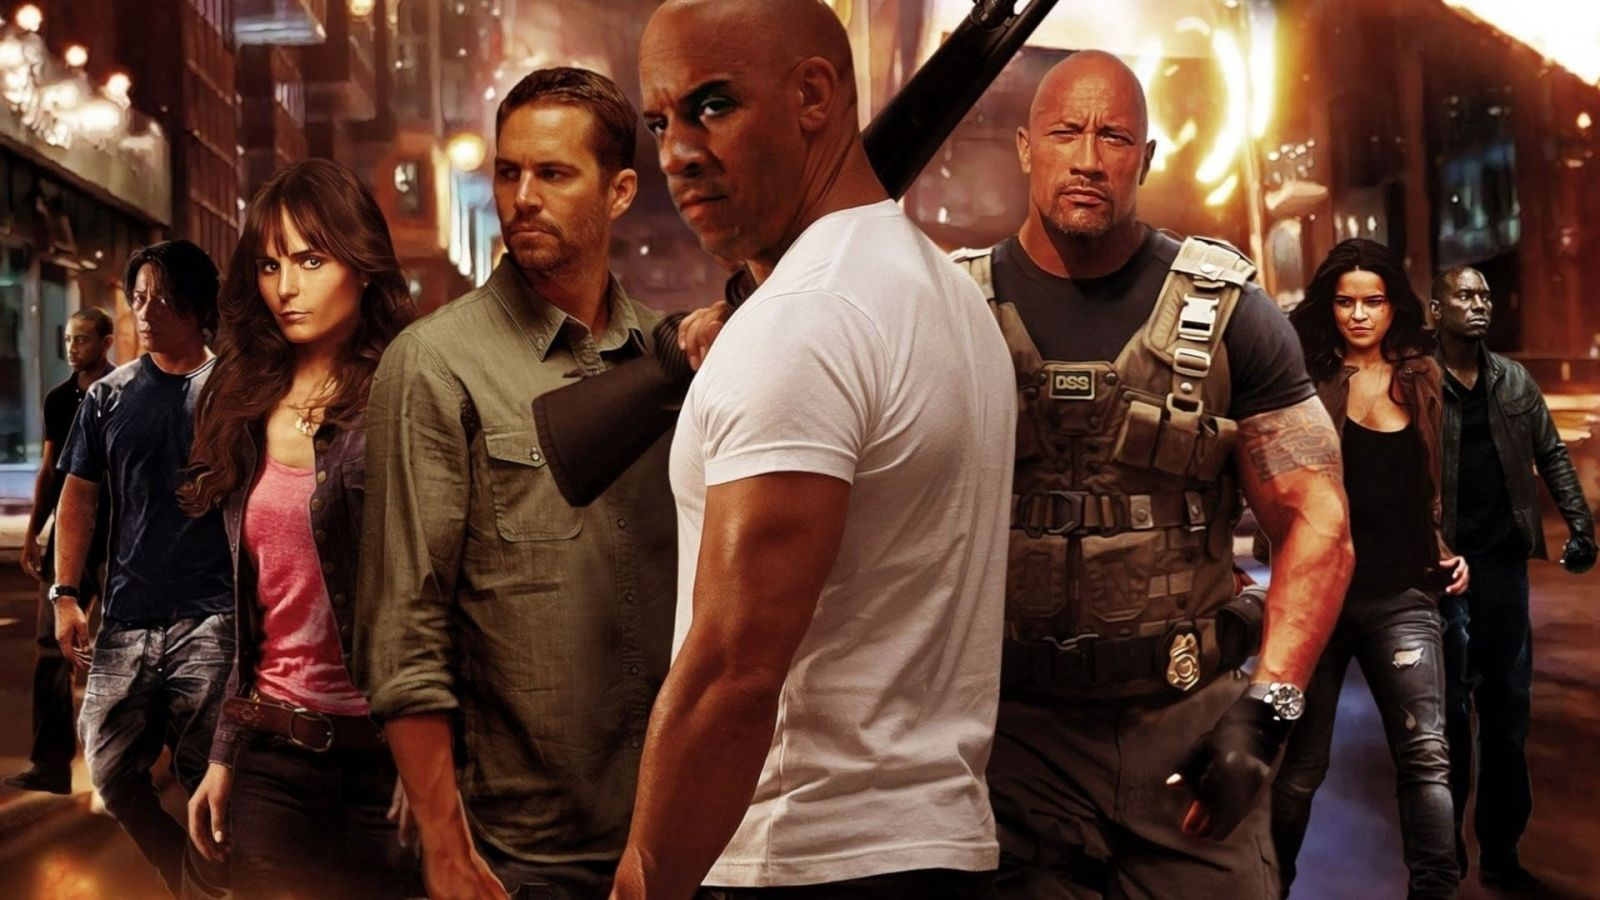 Fast and Furious 7 (2015) Full Movies Watch Online Free Download